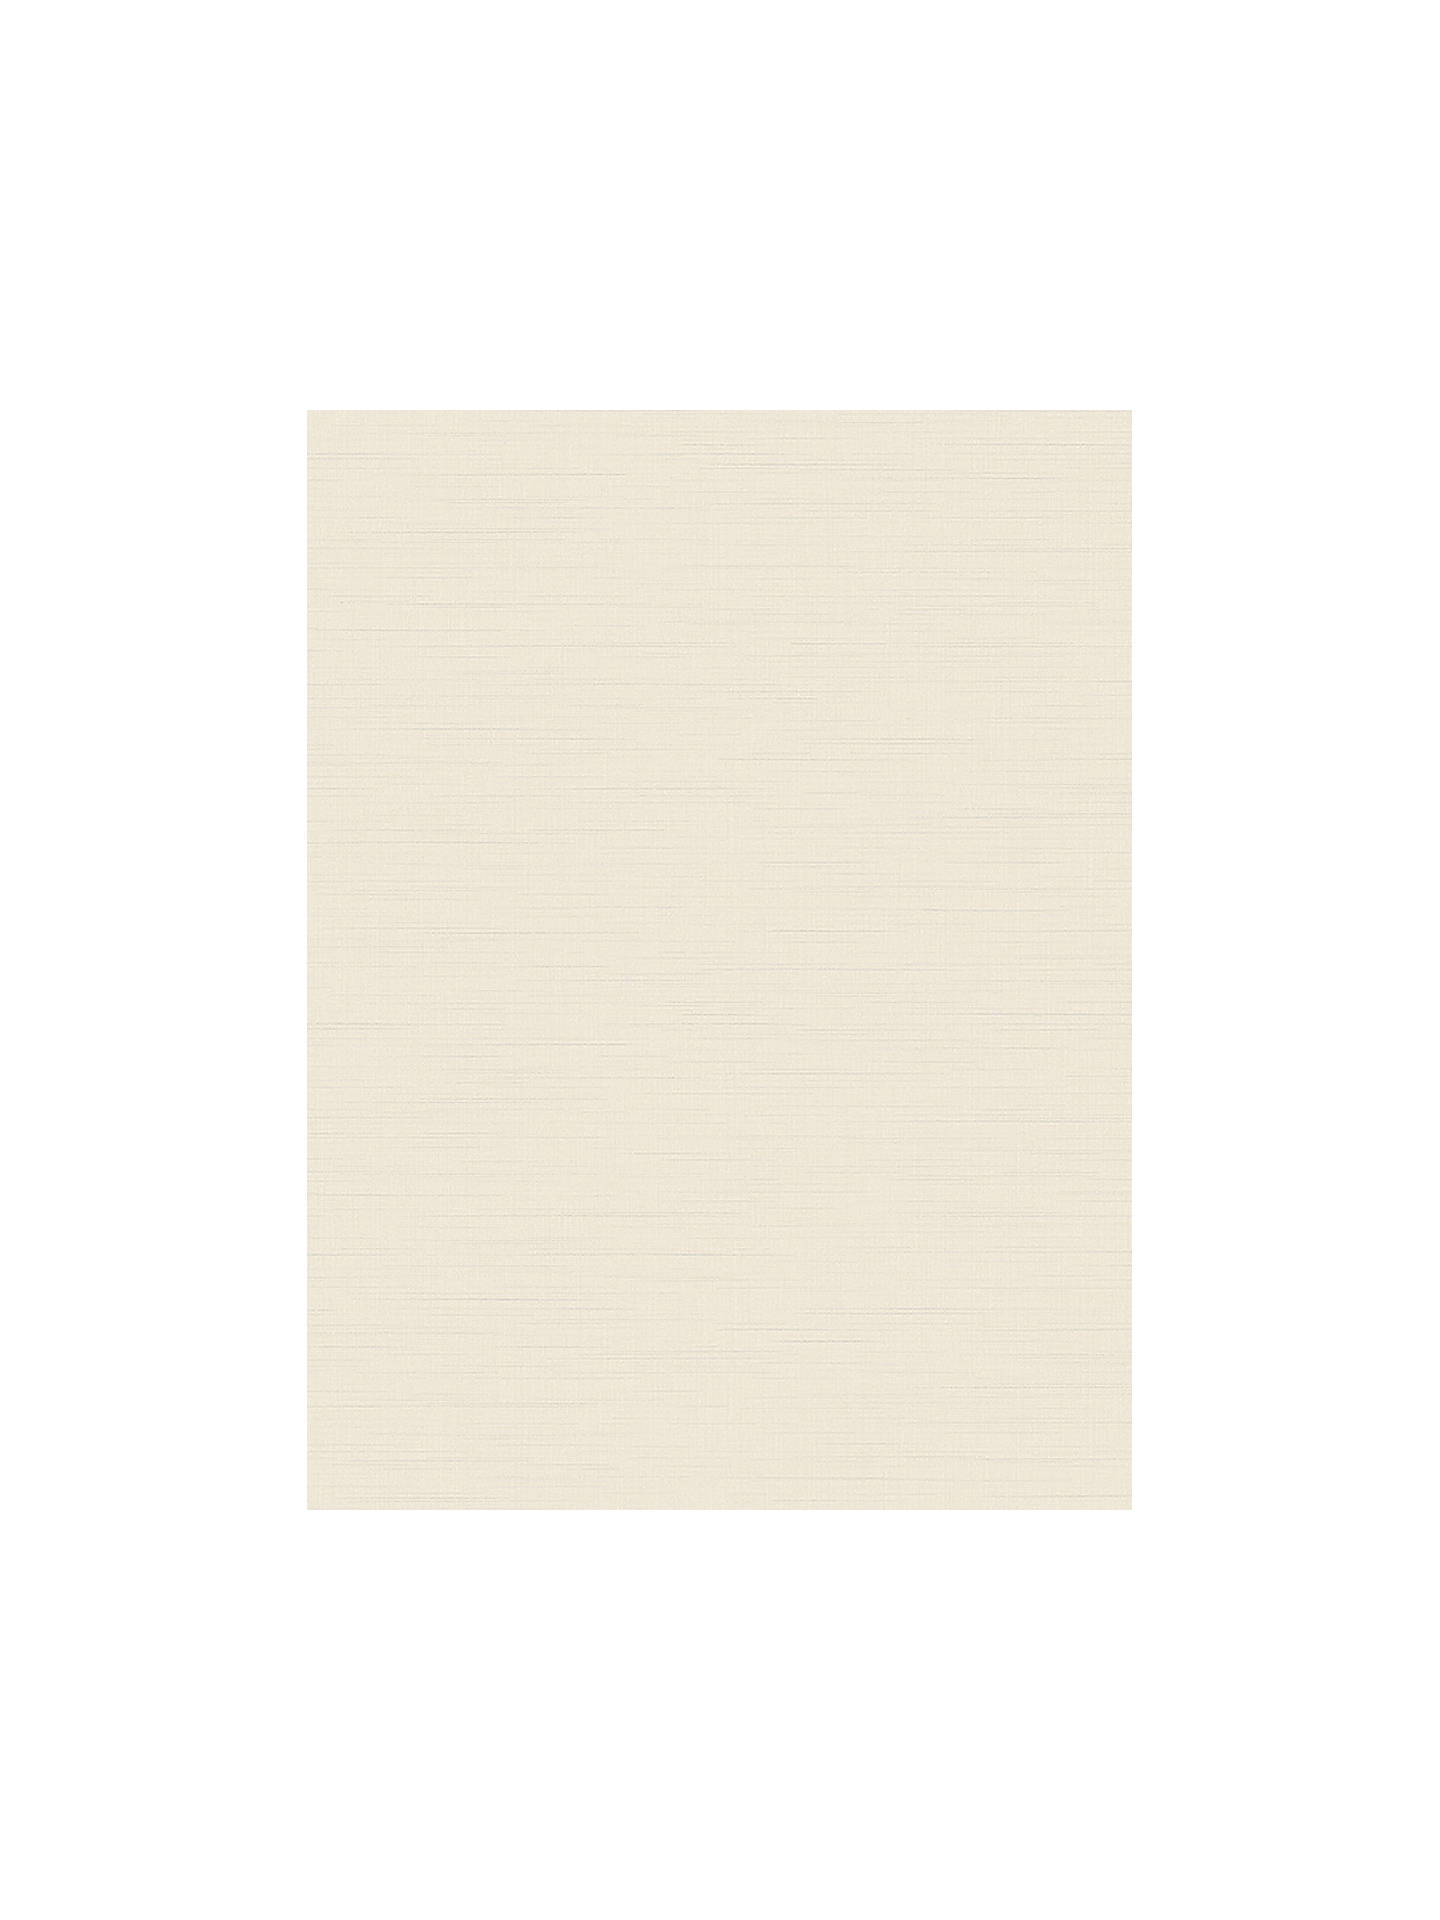 Buy Engblad & Co Raw Silk Wallpaper, 4570 Online at johnlewis.com